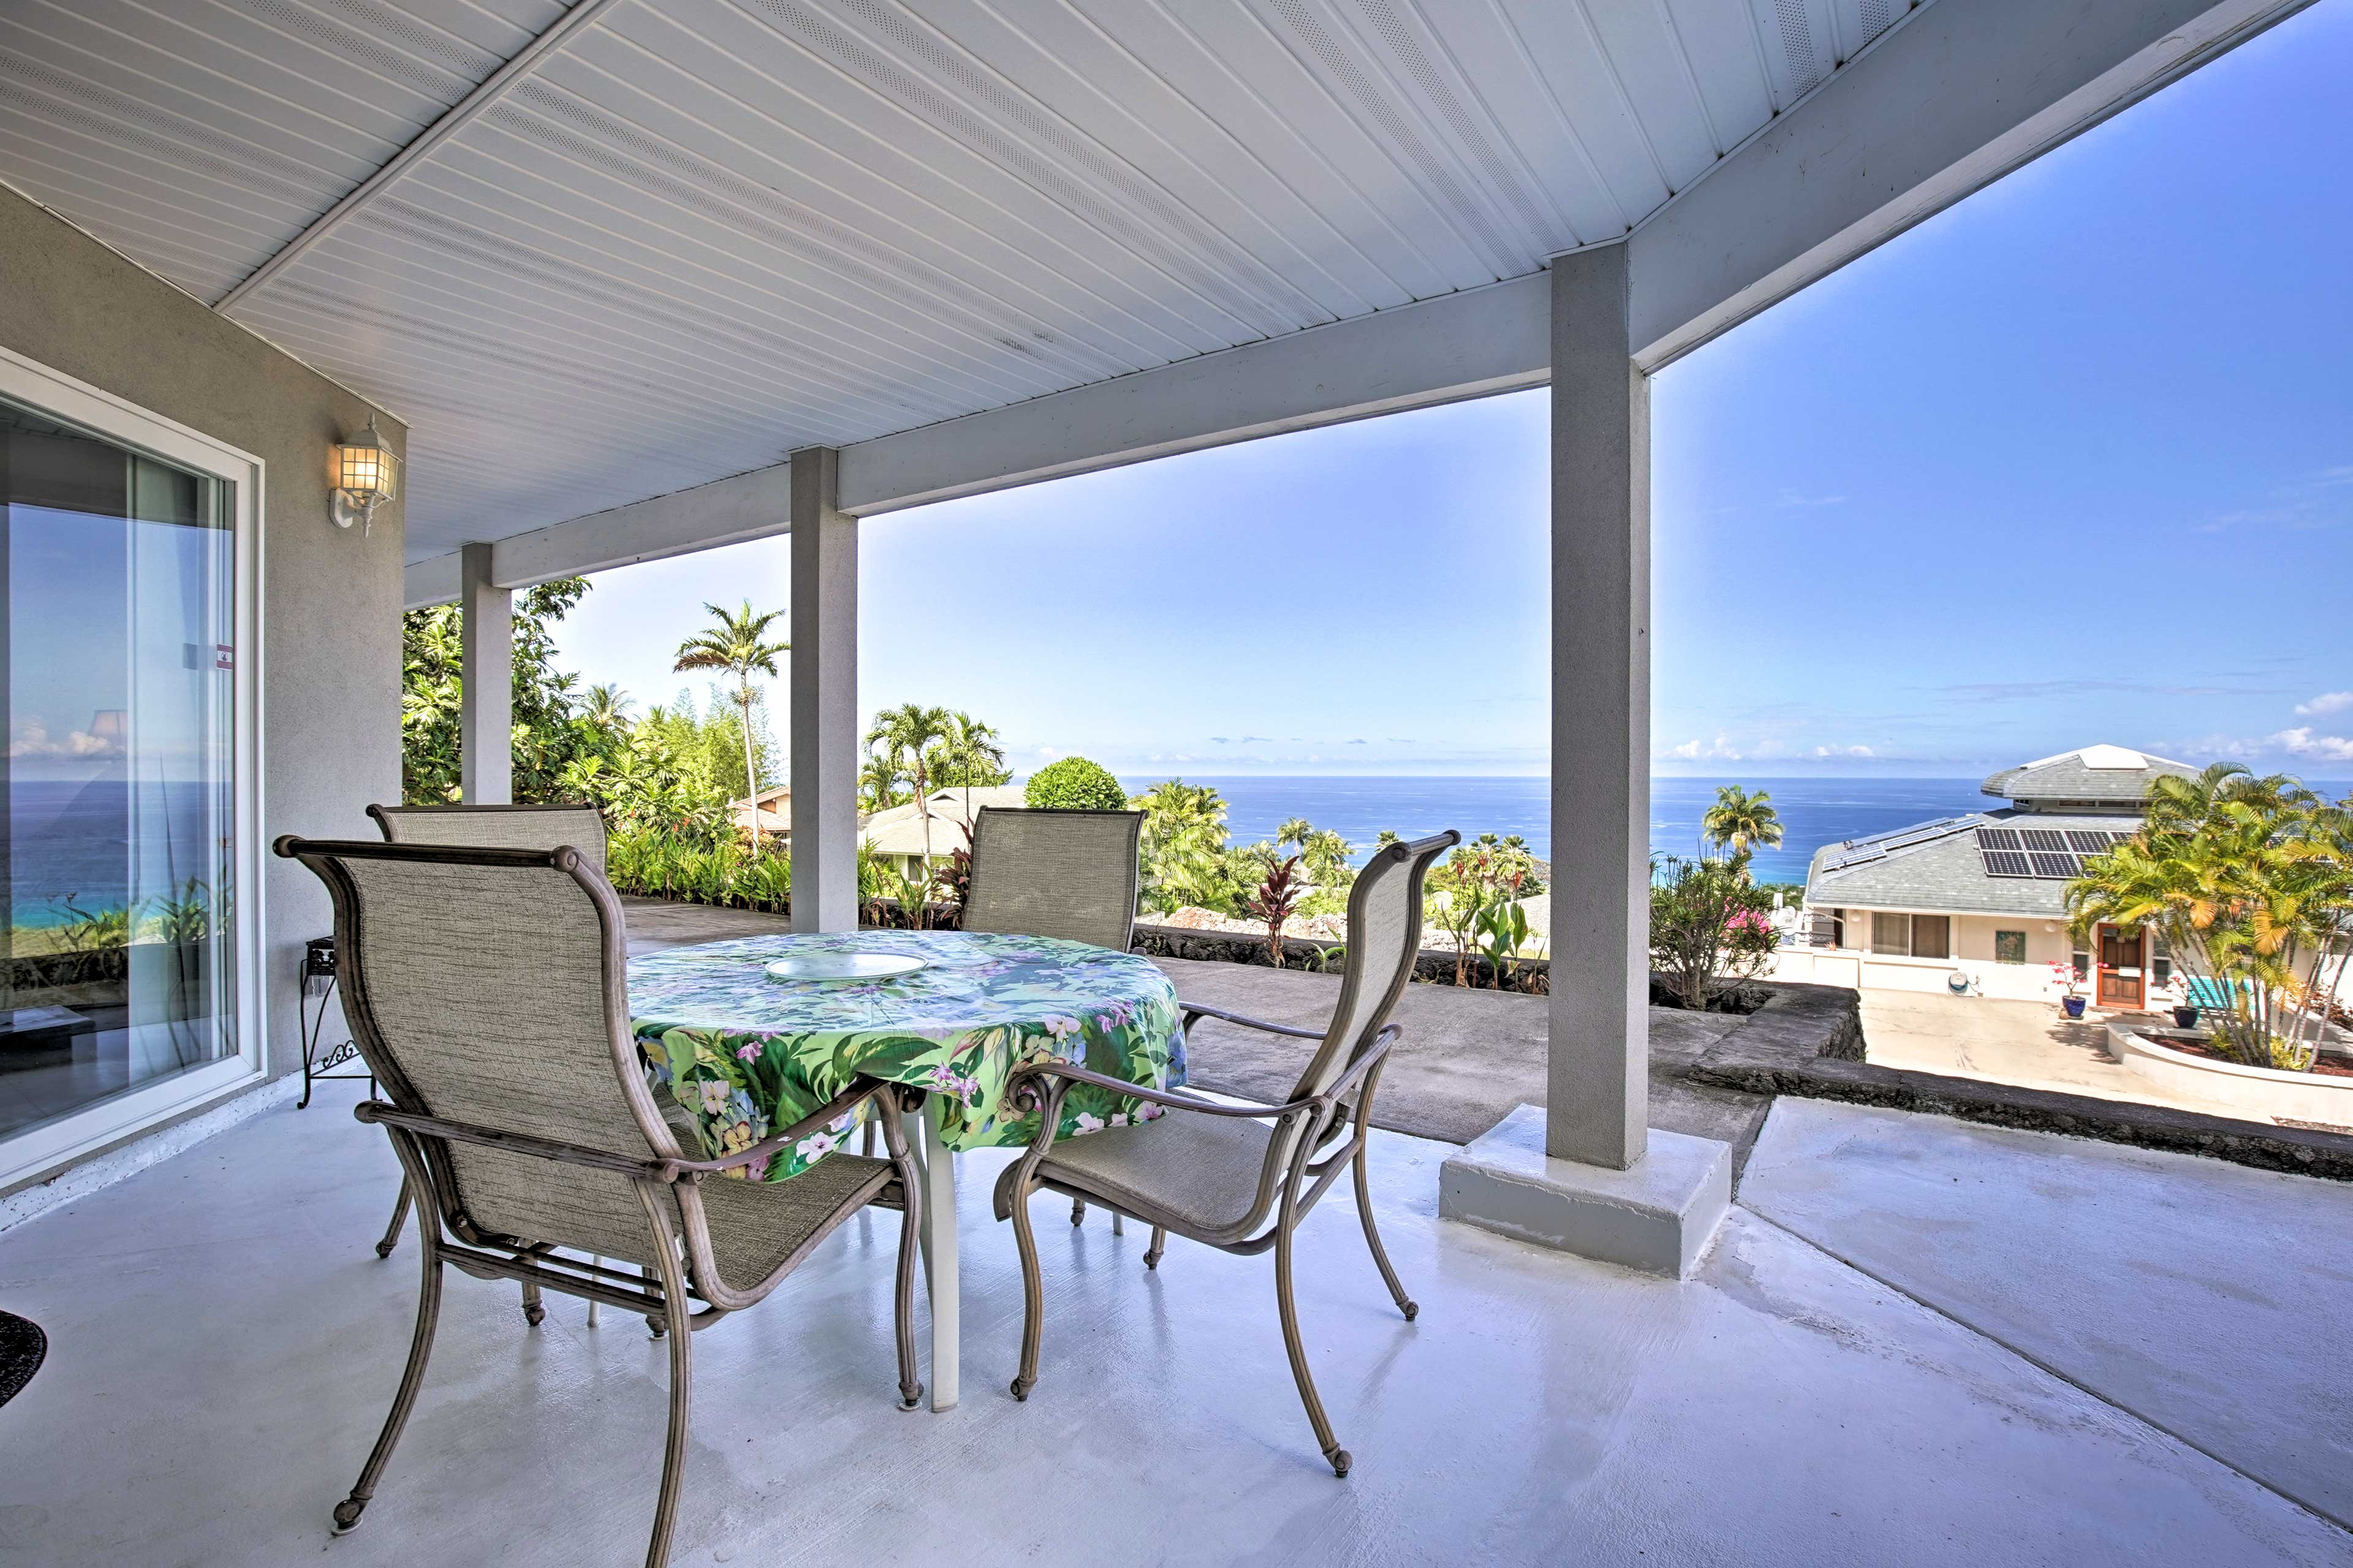 Watch the whales, dolphins, ships, and surfers from the comfort of your lanai!